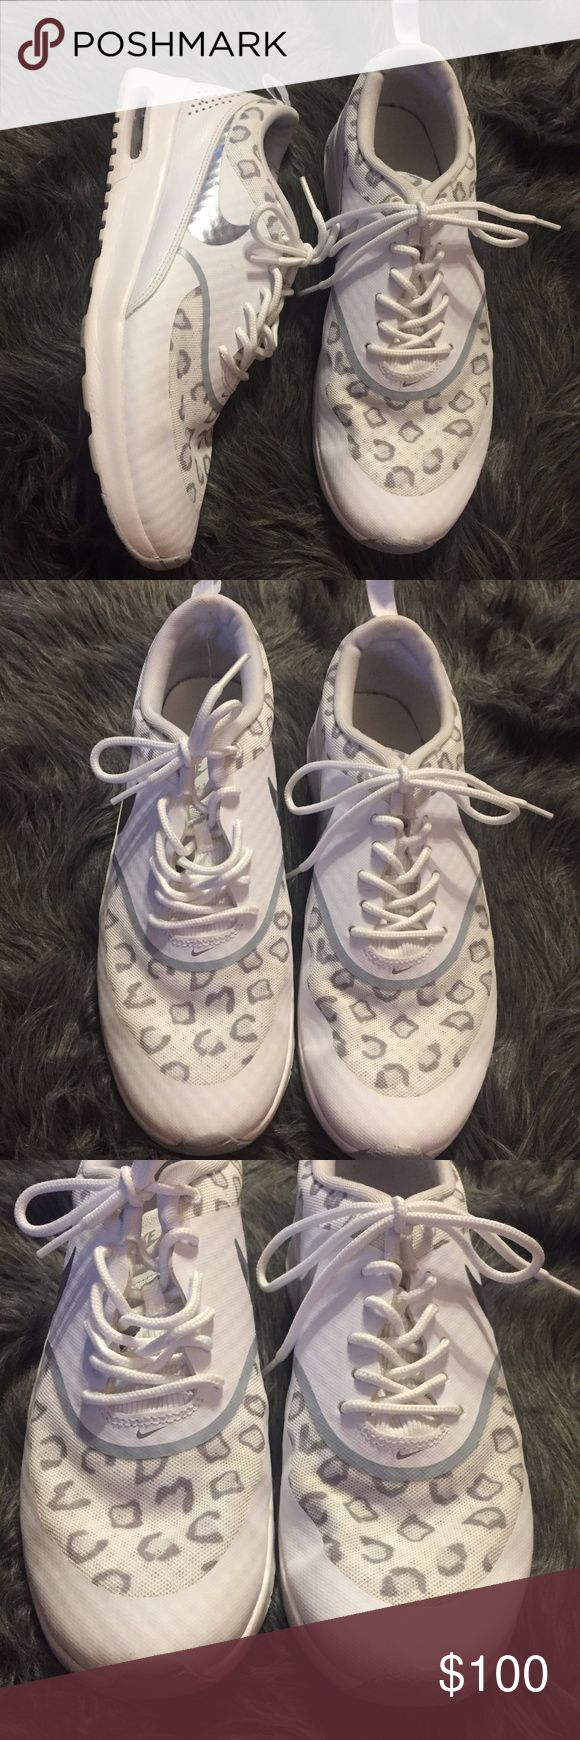 Nike Air Max Thea White Silver Cheetah Print RARE Nike Air Max Thea White & Silver Cheetah Print  Great used condition, lots of life left in these babies! No rips or tears in these. Super hard to find. Nike Shoes Sneakers